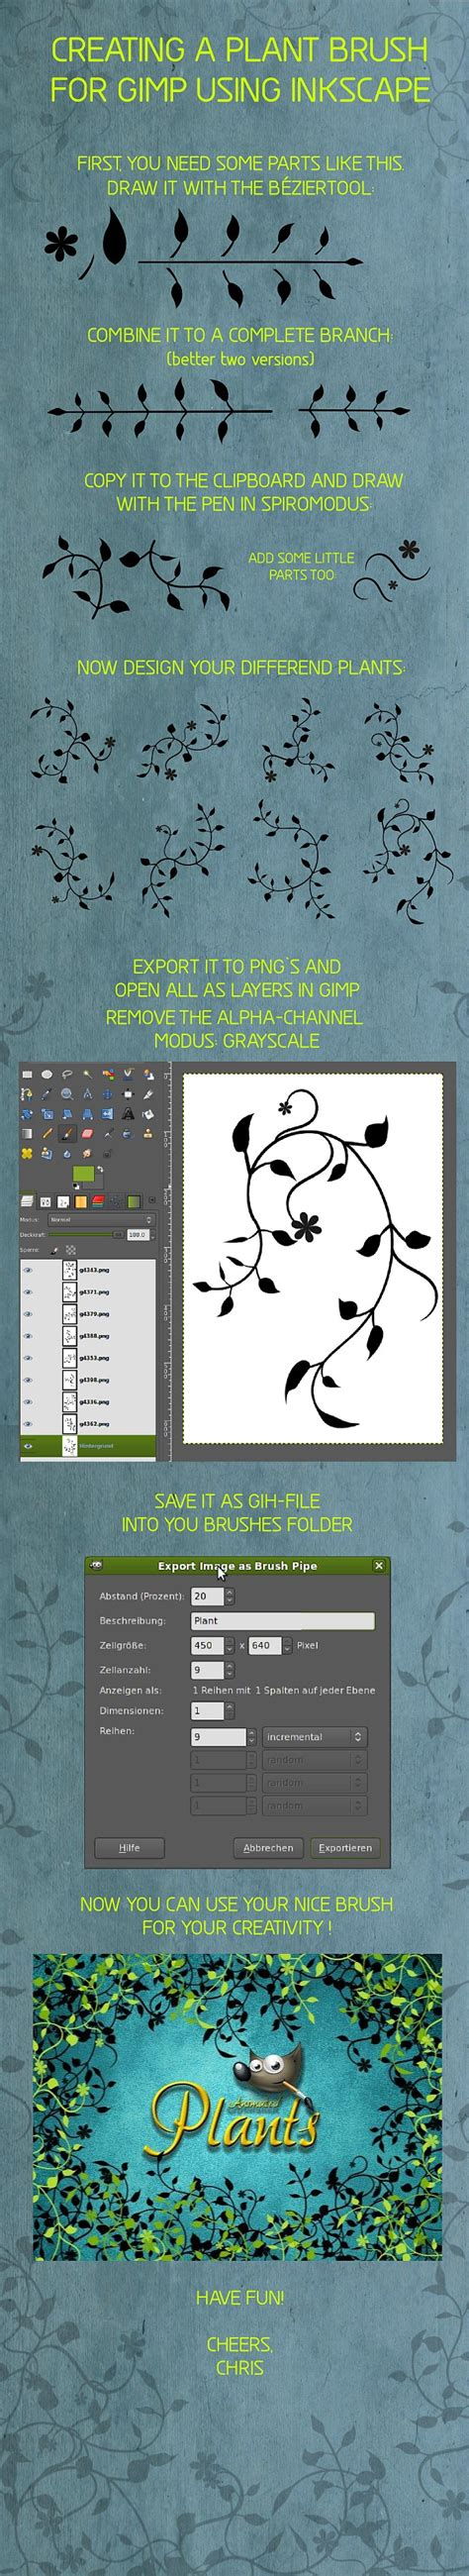 pattern brush gimp from inkscape to gimp brush tutorial 171 chrisdesign blog